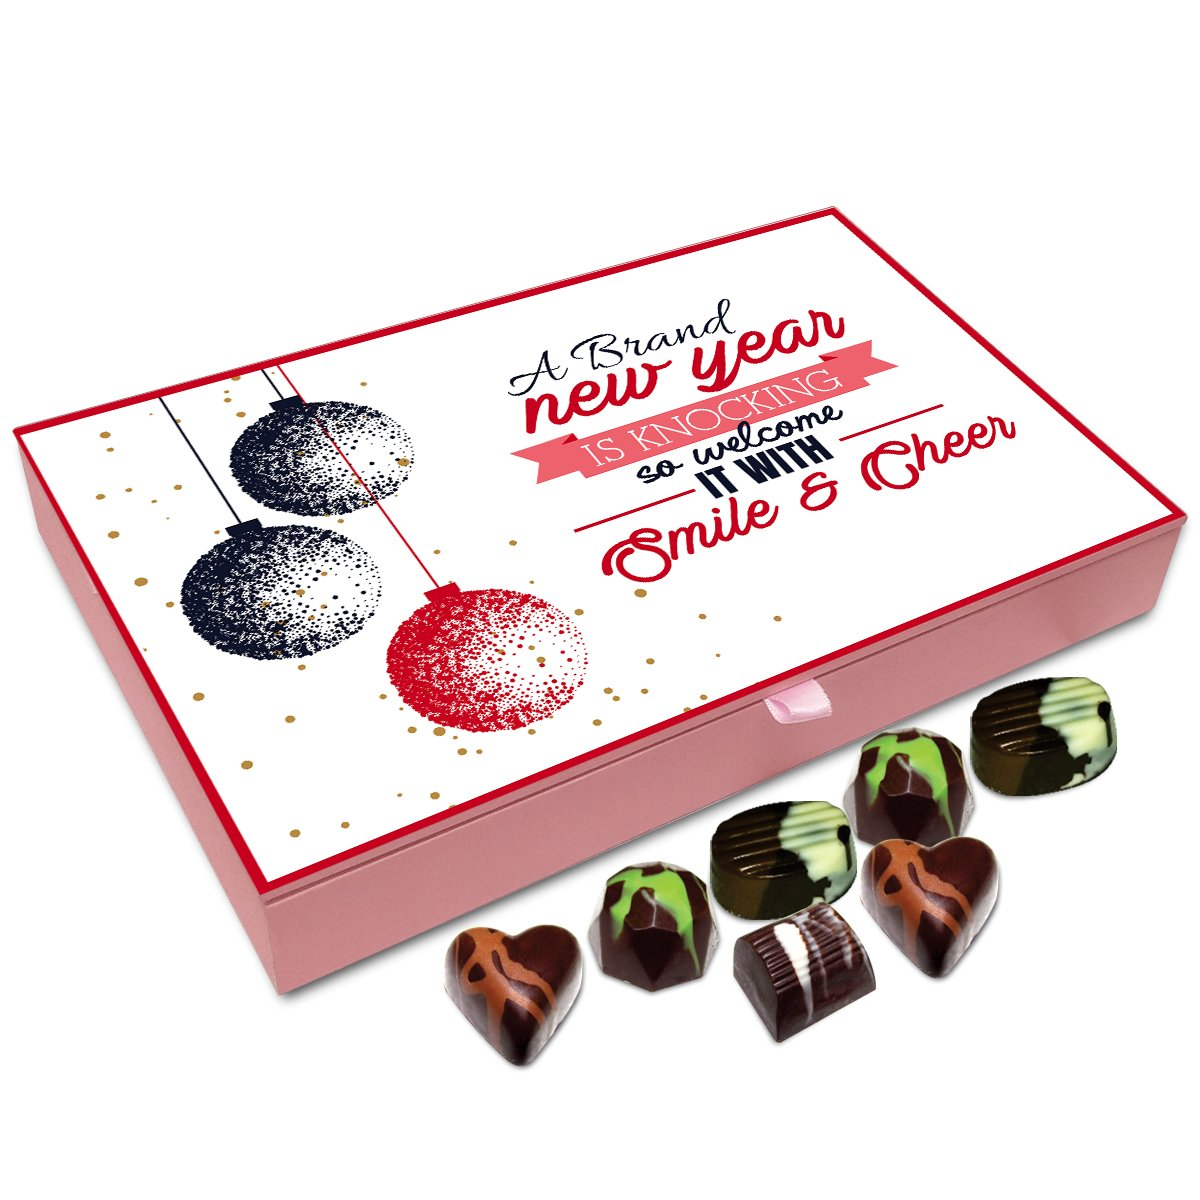 Chocholik New Year Gift Box – New Year is Knocking The Door So Welcome It with Smile Chocolate Box – 12pc